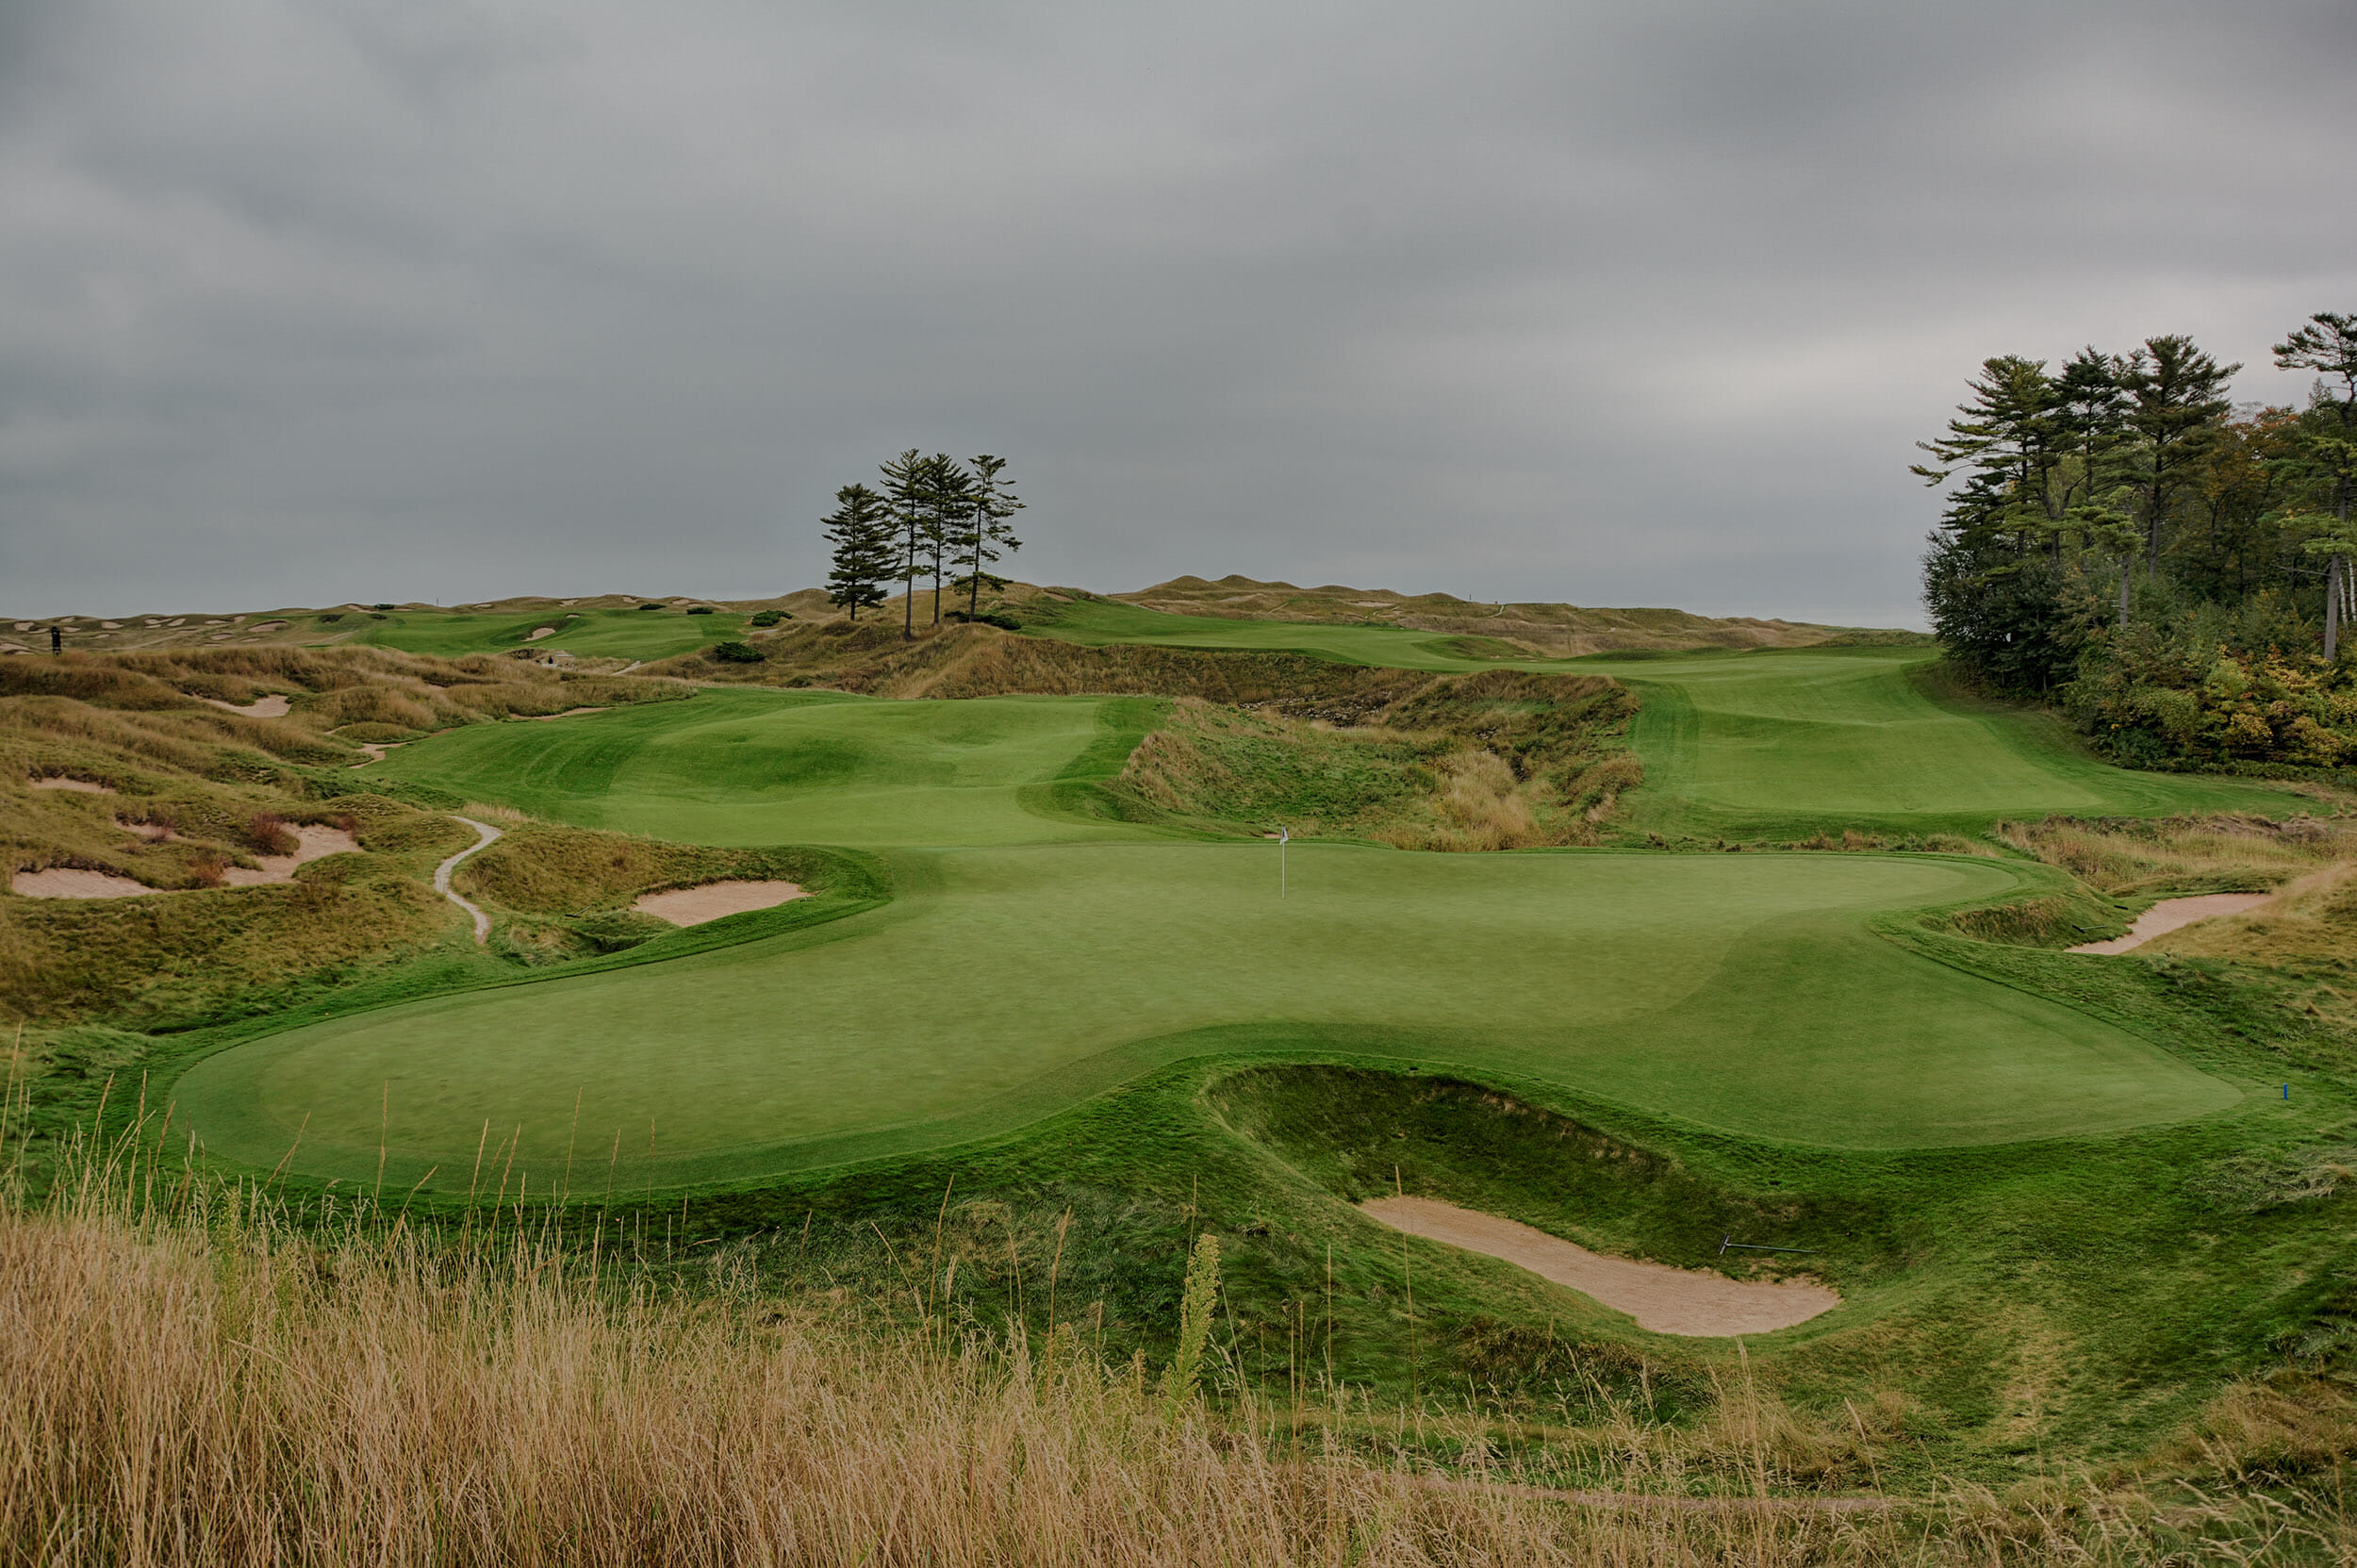 Image of the 18th hole and massive green on The Straits Golf Course, Whistling Straits, Destination Kohler, Sheboygan, Wisconsin, USA